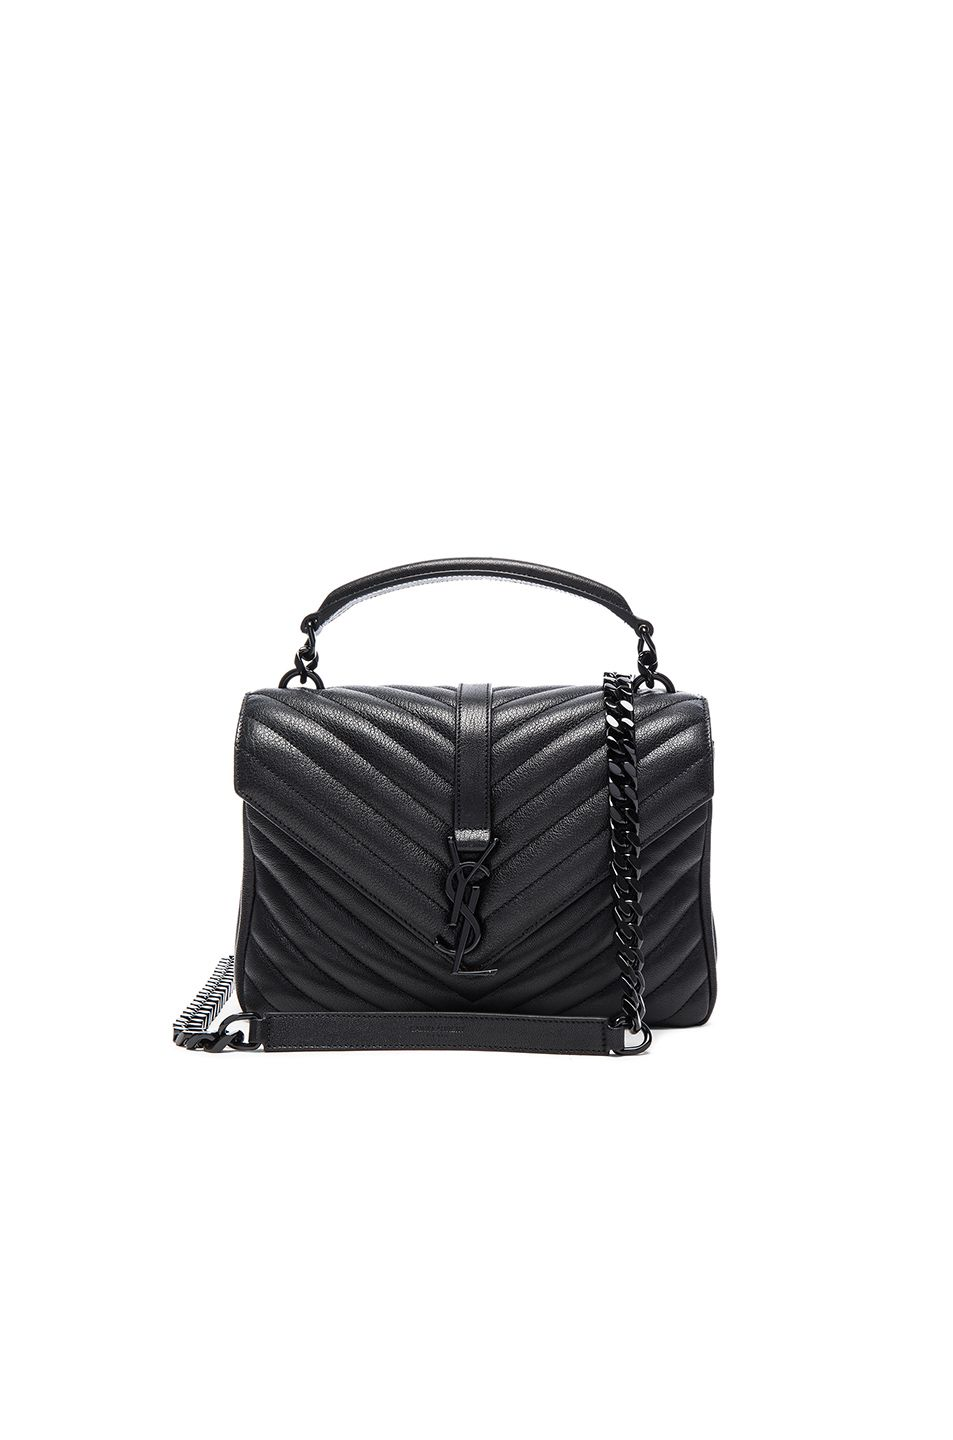 2a348a5f0882 Image 1 of Saint Laurent Medium Monogram College Bag in Black Black ...